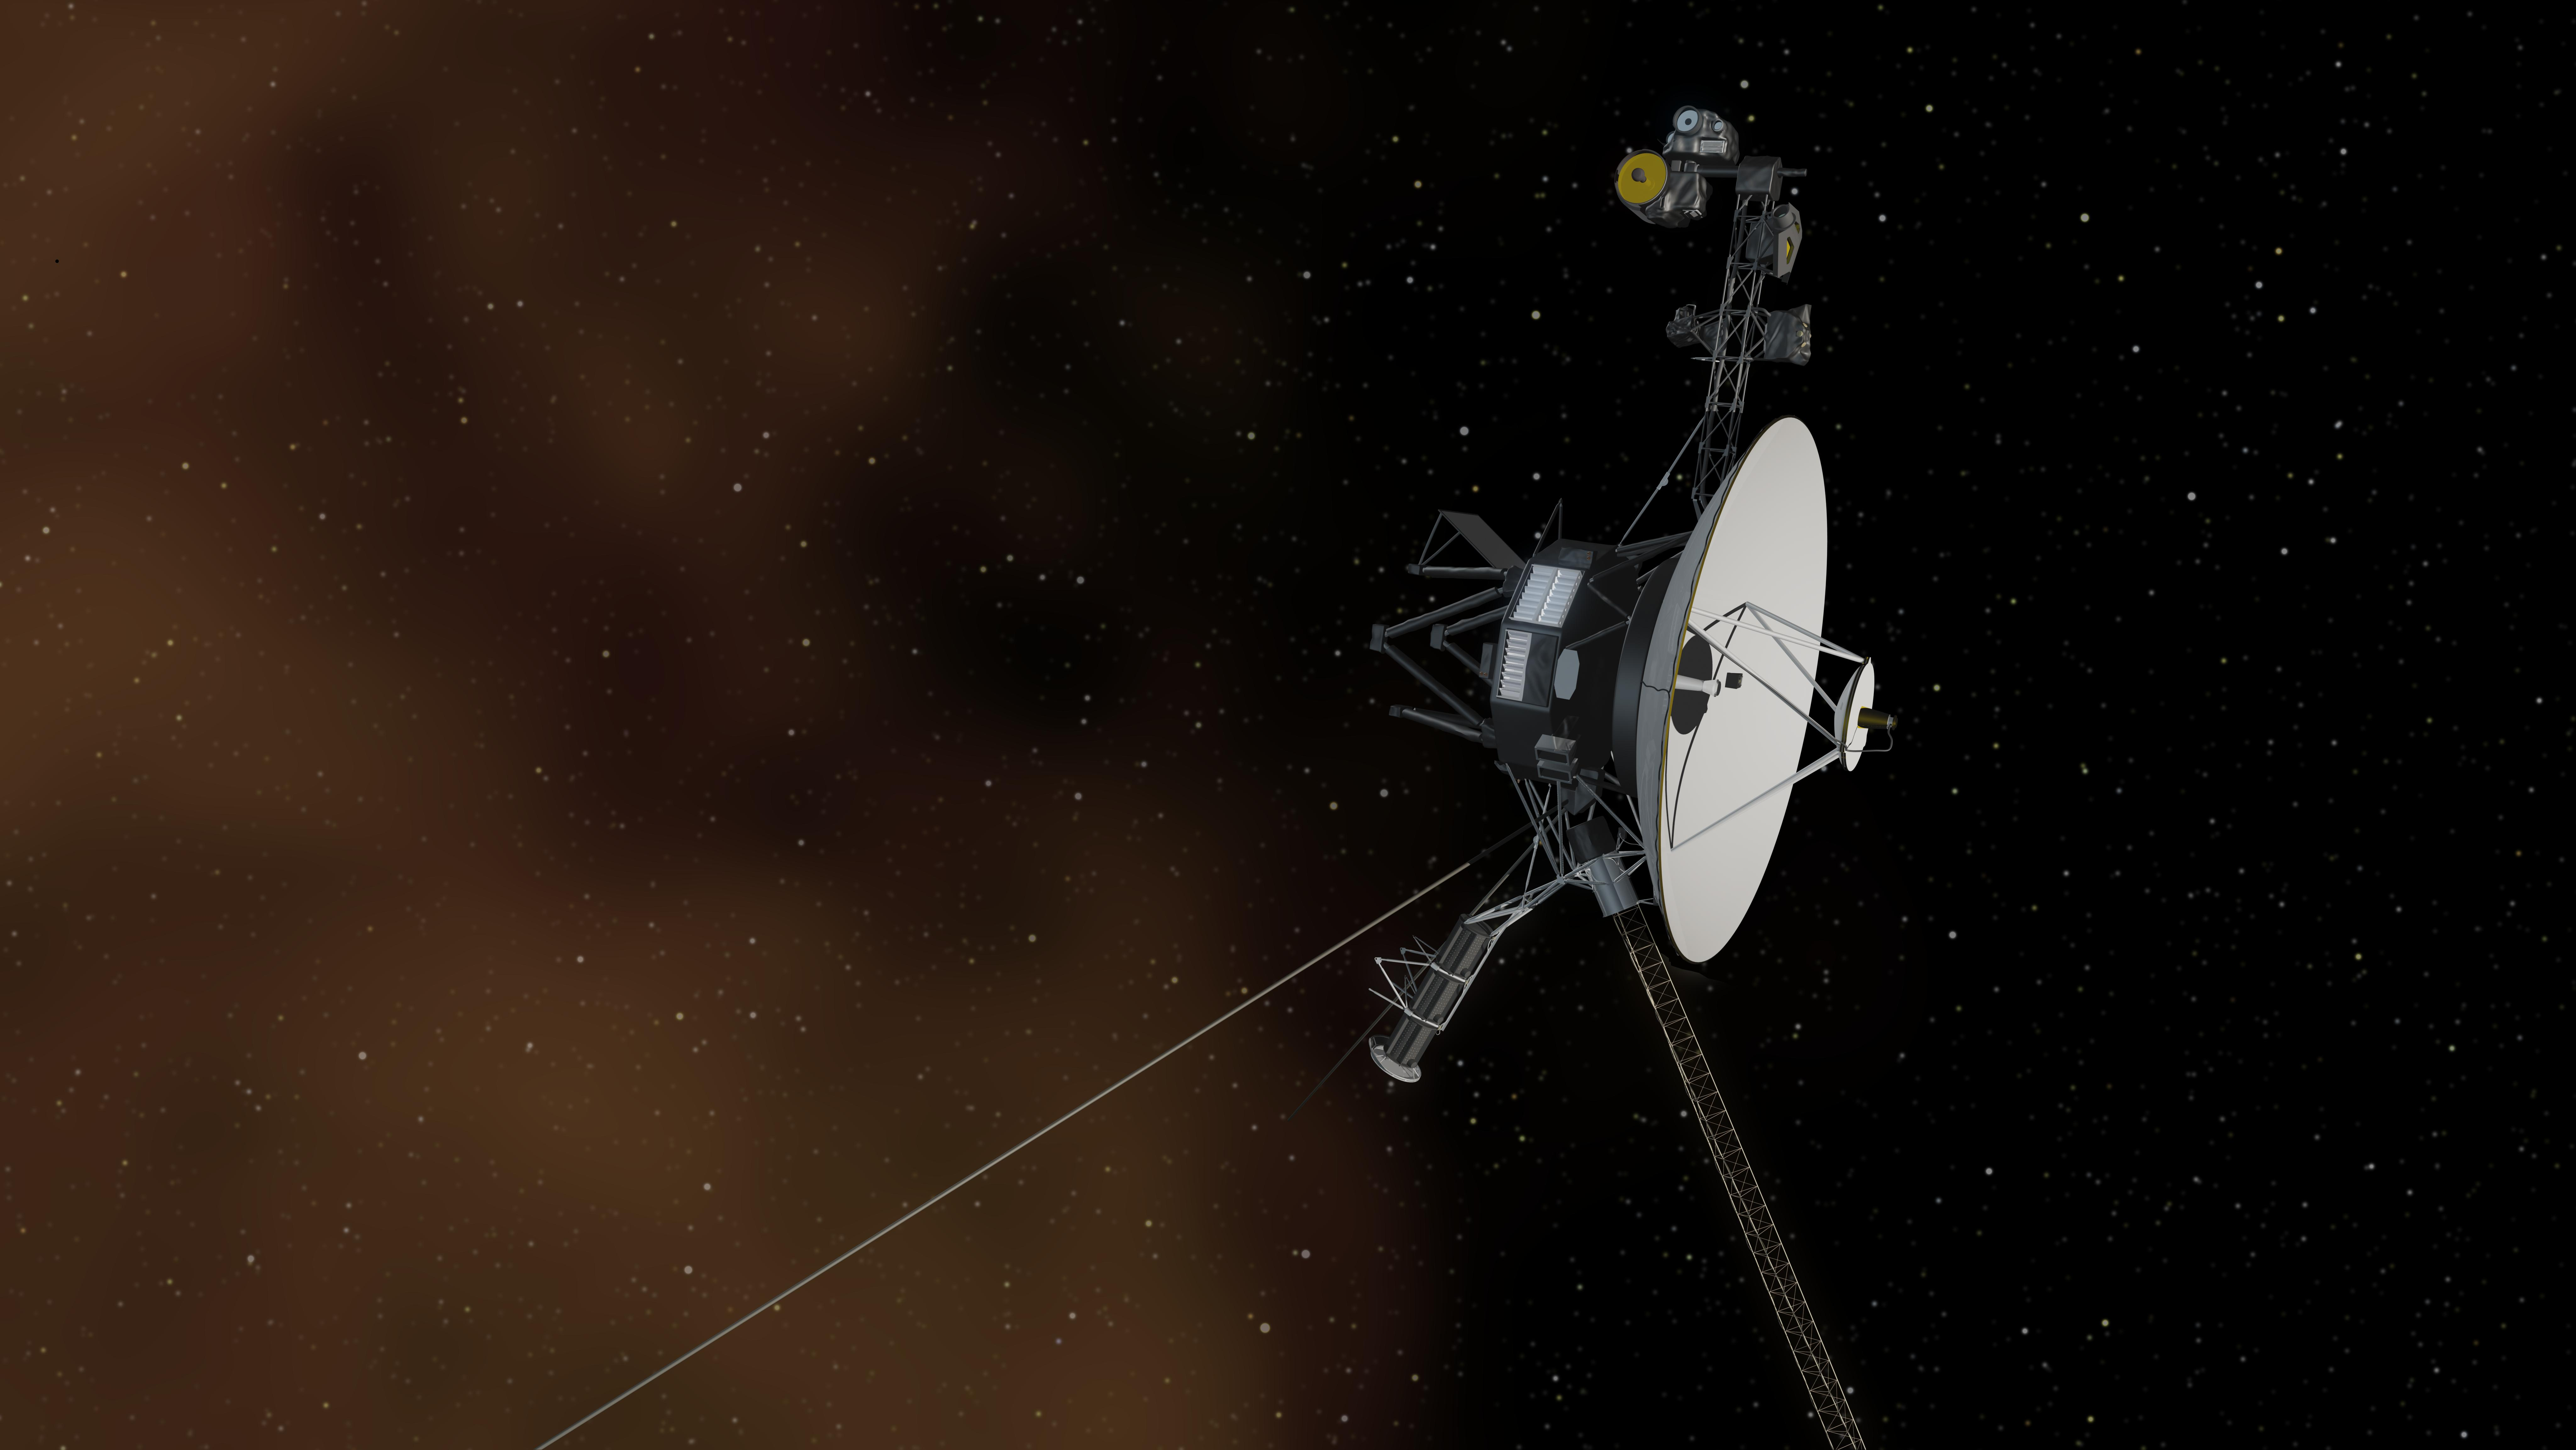 Artist's concept of Voyager 1 in interstellar space. Credit: NASA/JPL-Caltech